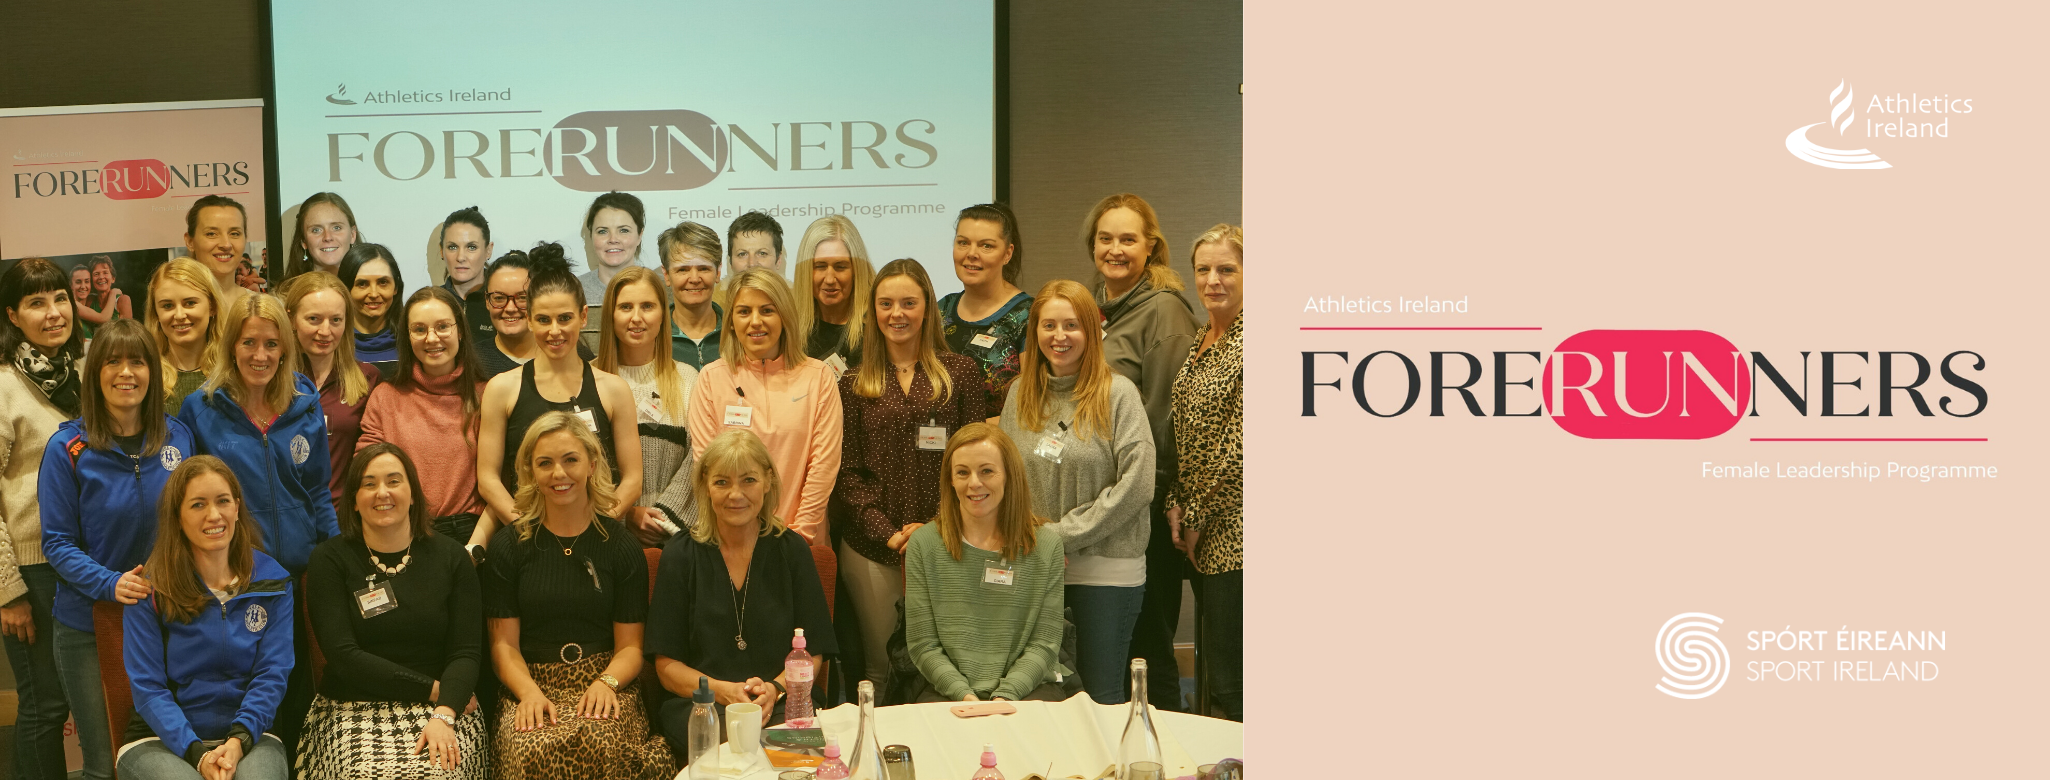 Session 4 of Forerunners Report with Cliodhna O'Connor